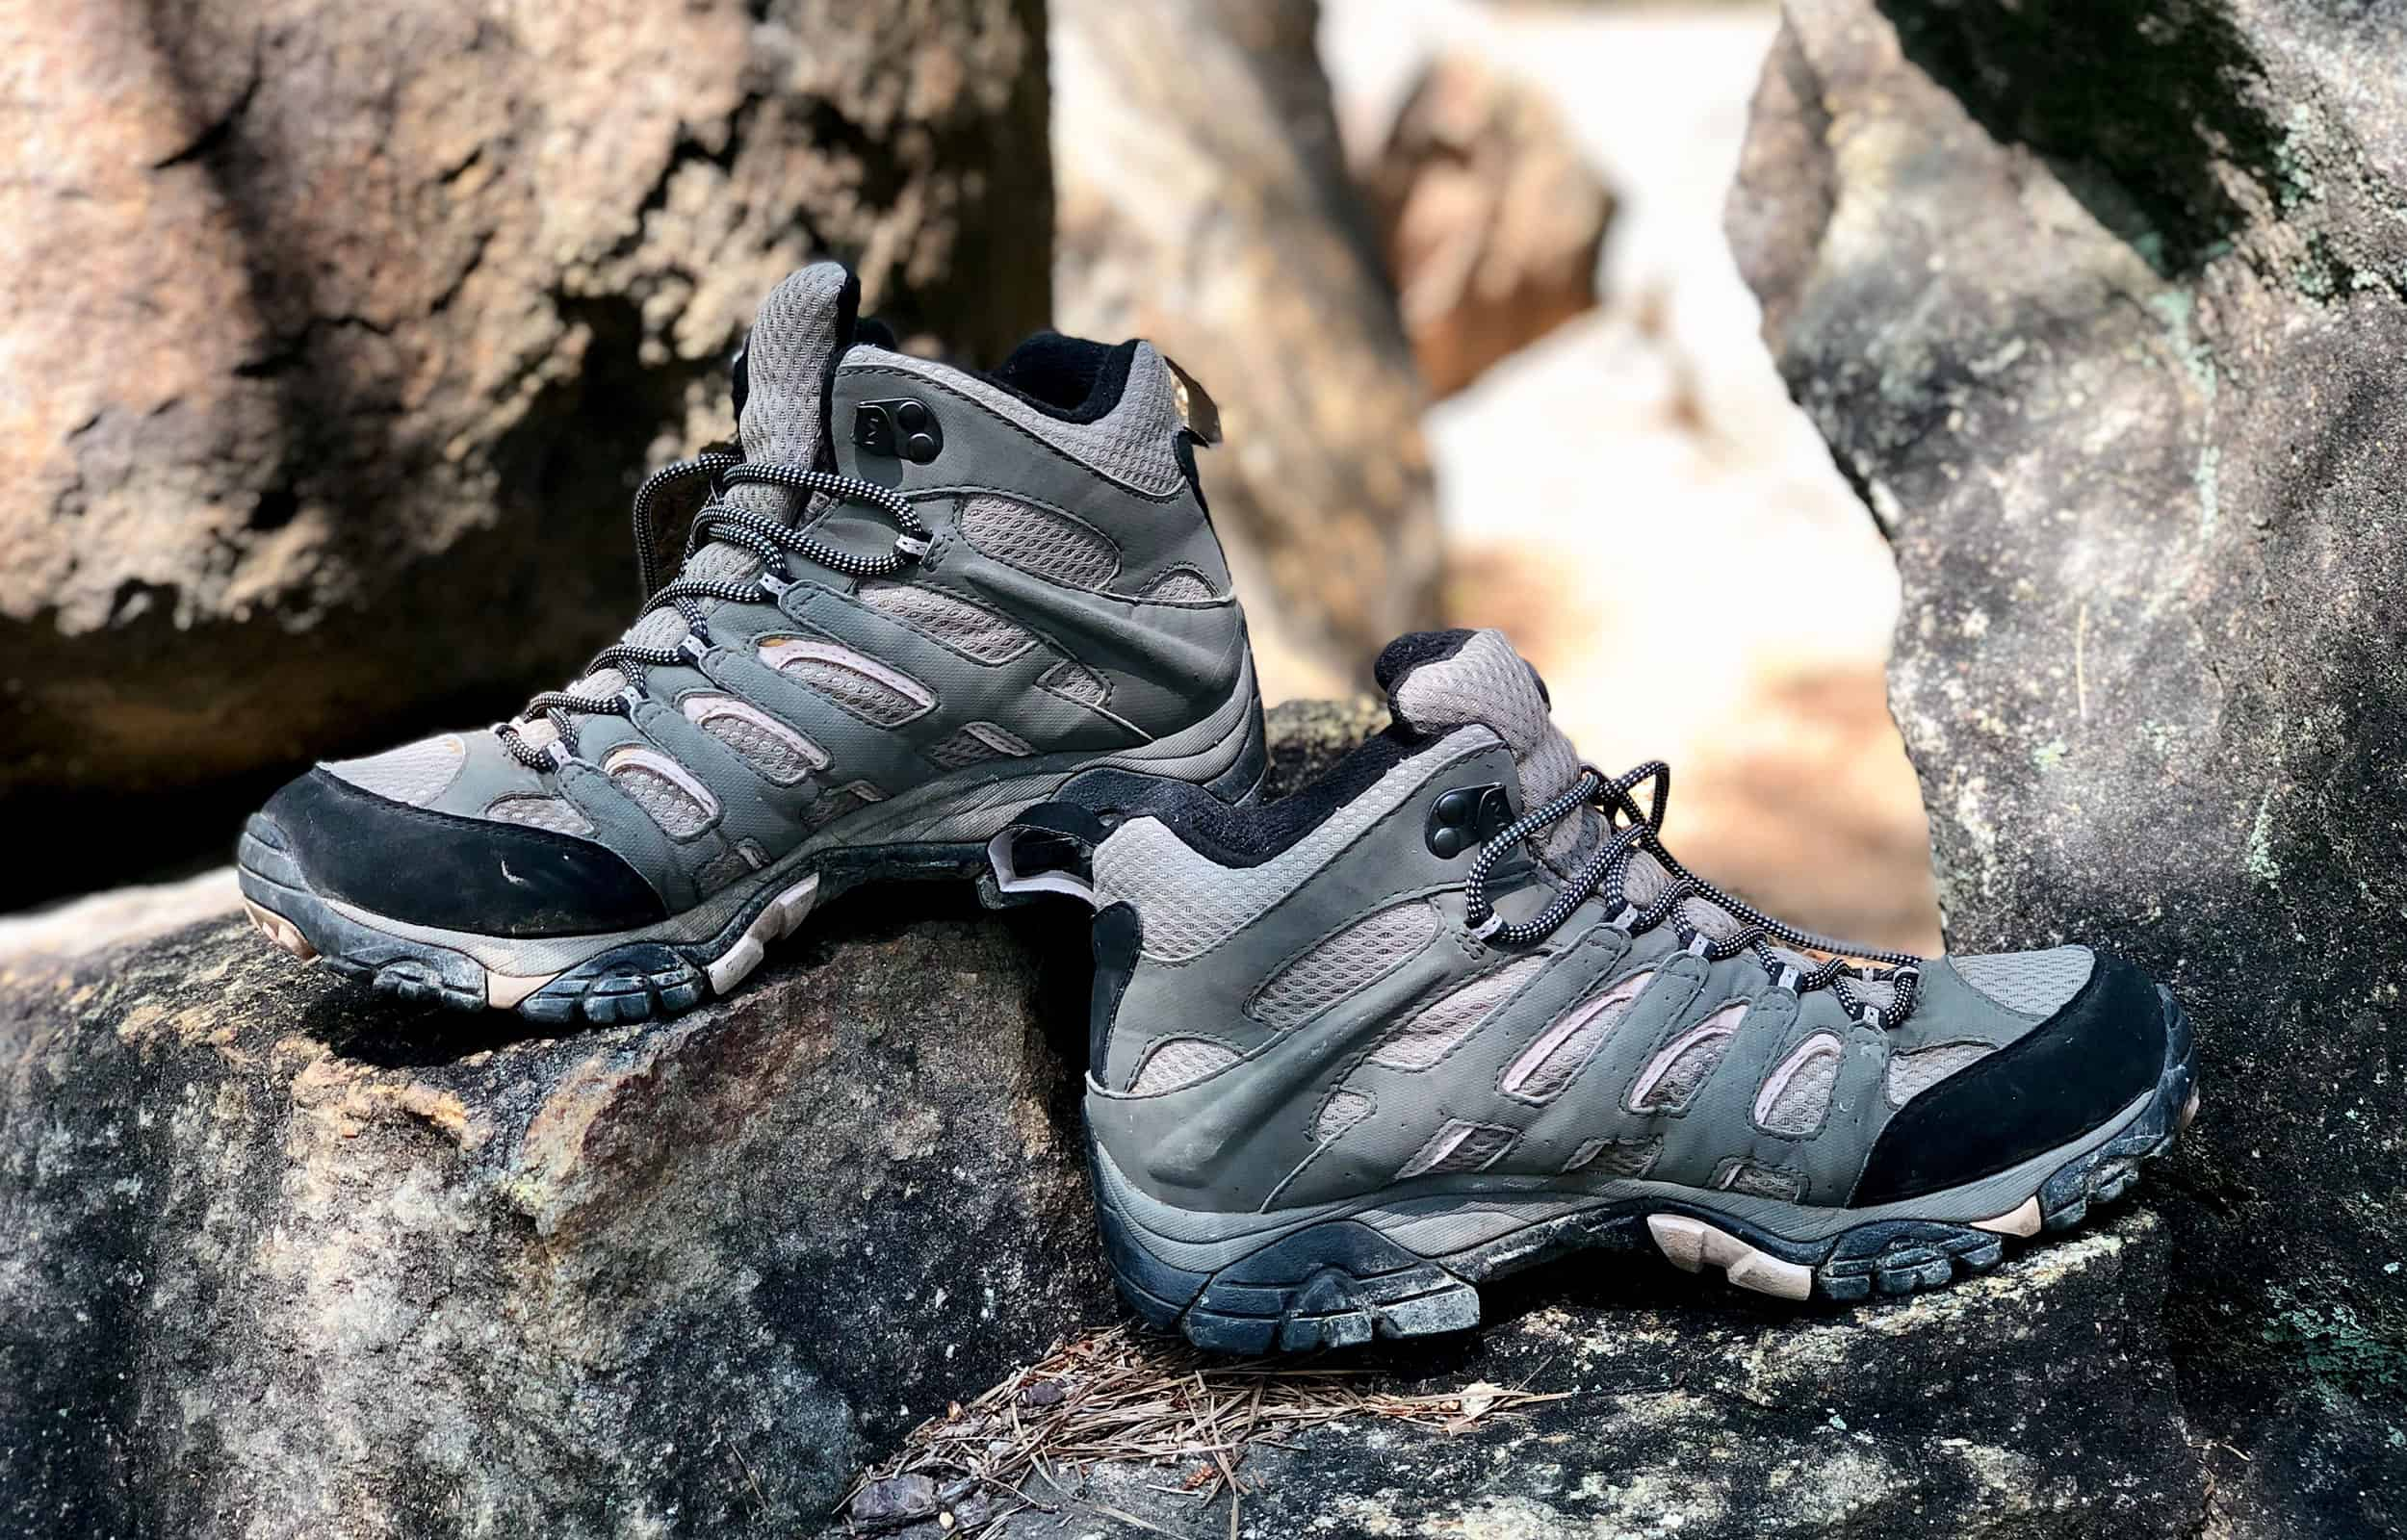 side views of merrell moab 2 shoes